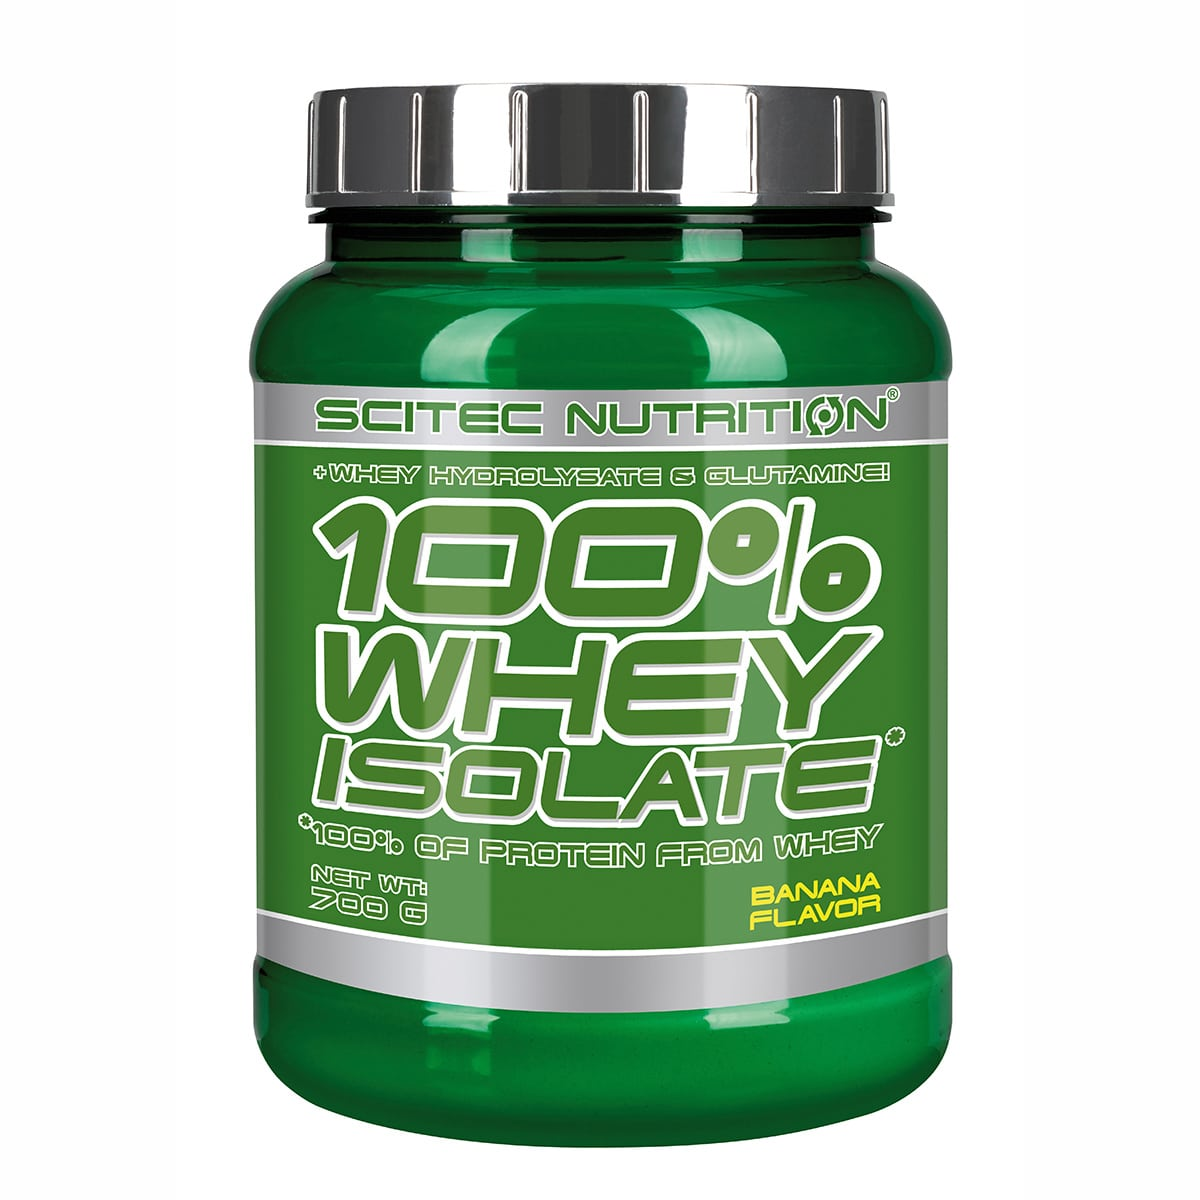 100% Whey Isolate, 700g